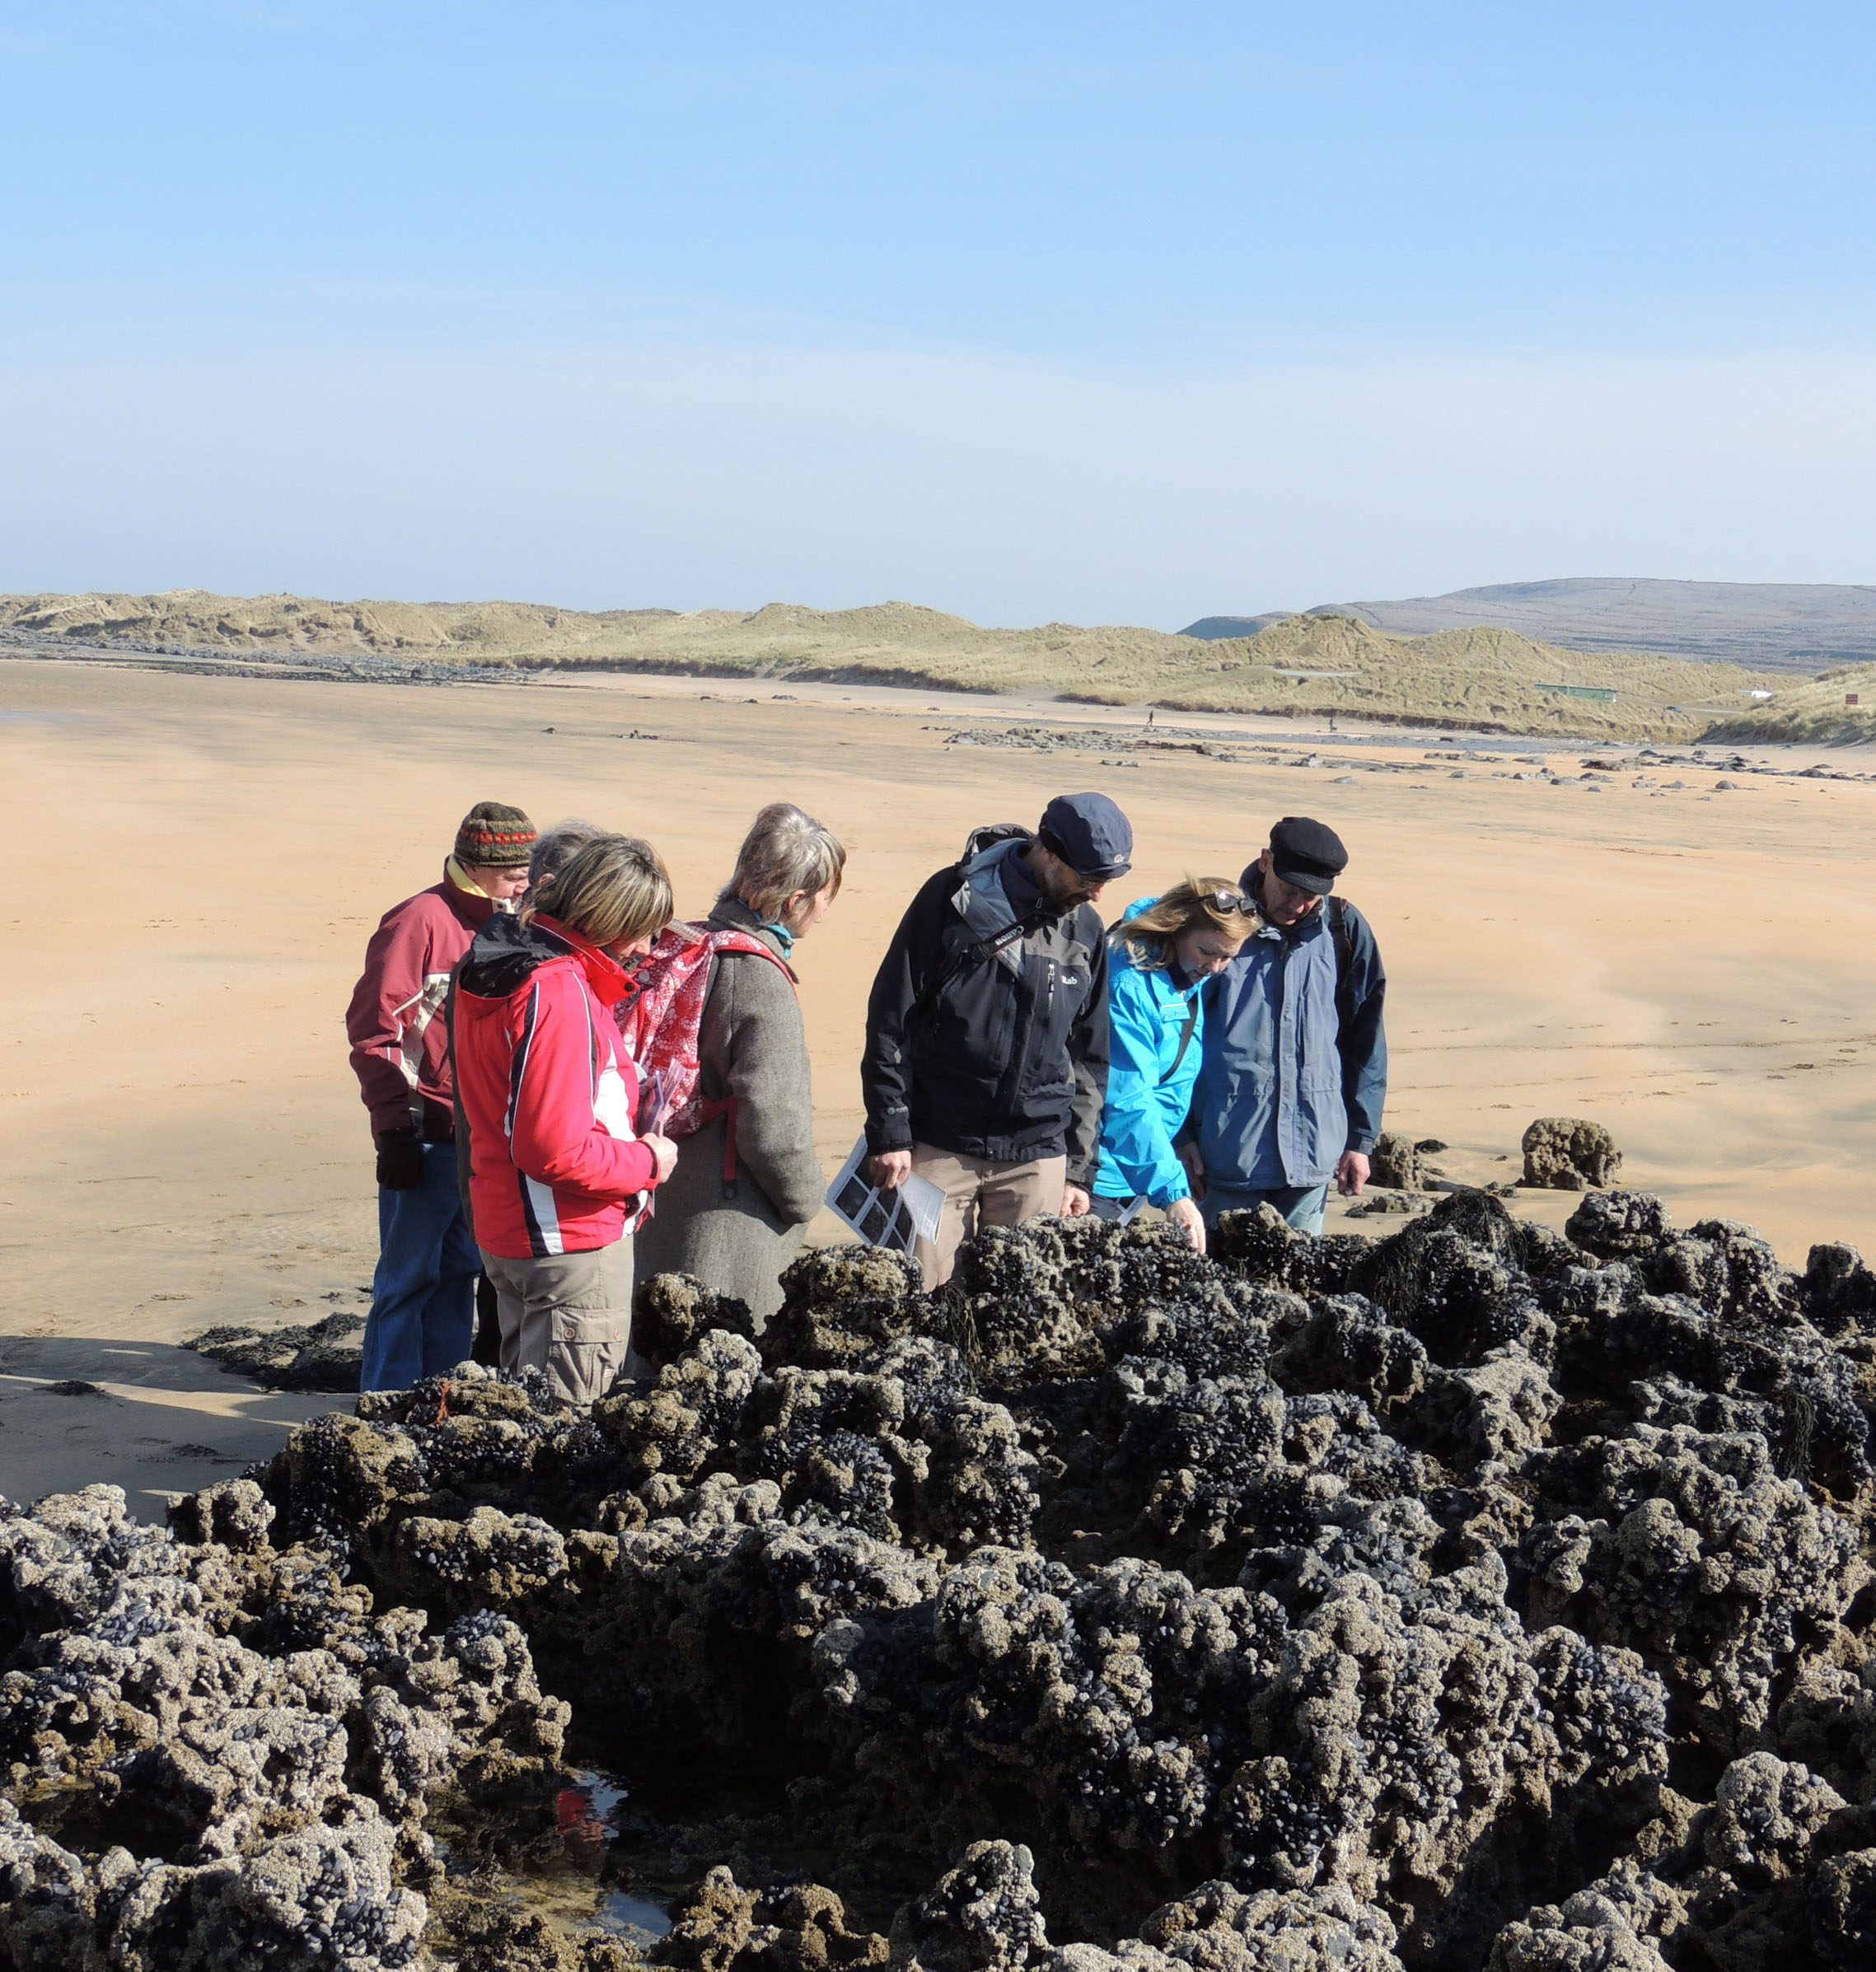 Participants of a recent Geopark field trip at Fanore explore the impact of climate change on the Clare coastline